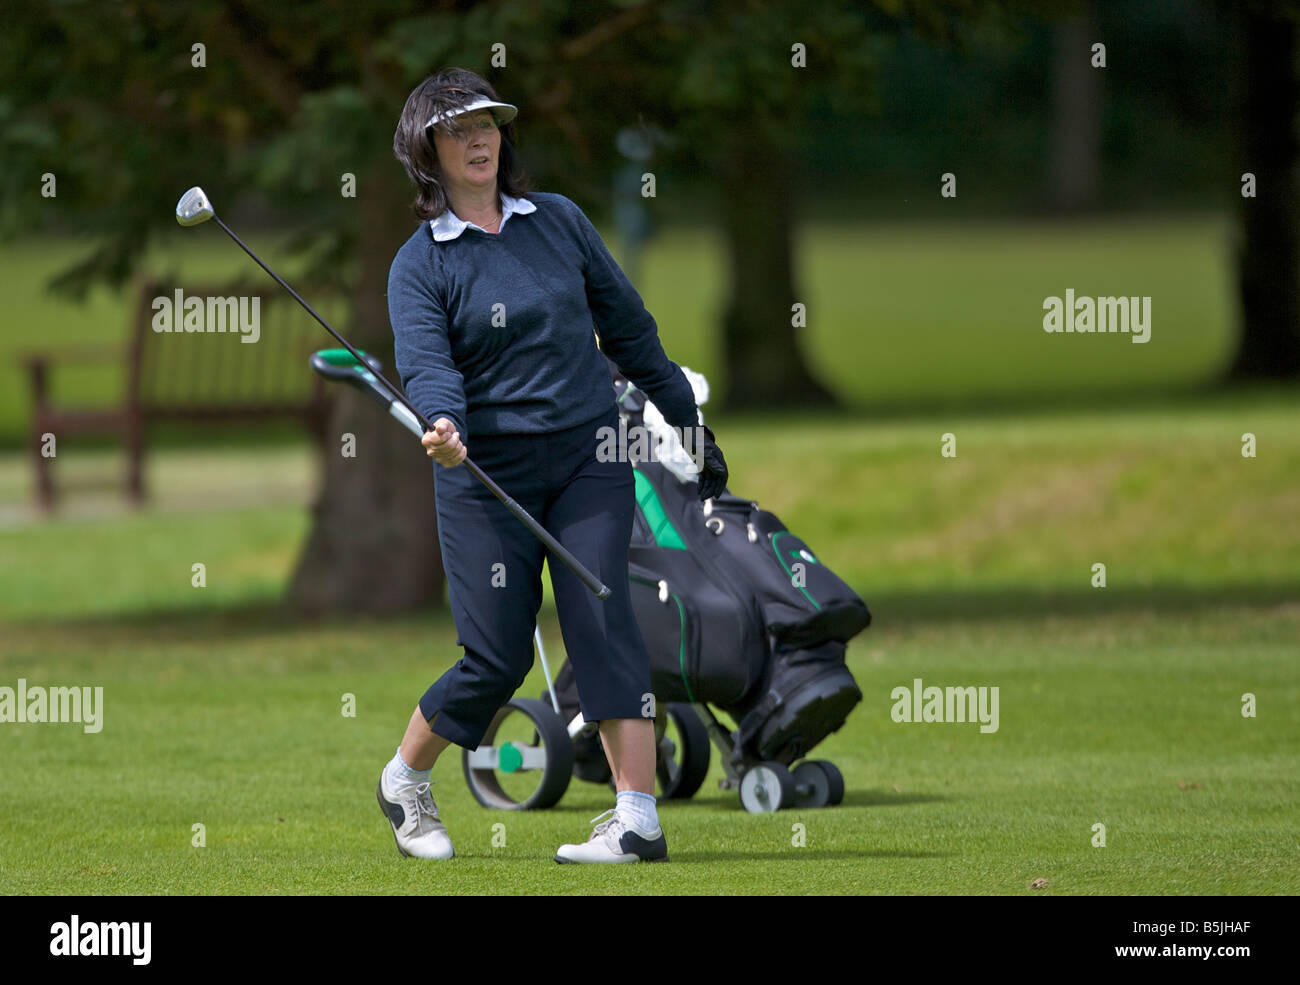 Lady playing a shot off the fairway - Stock Image